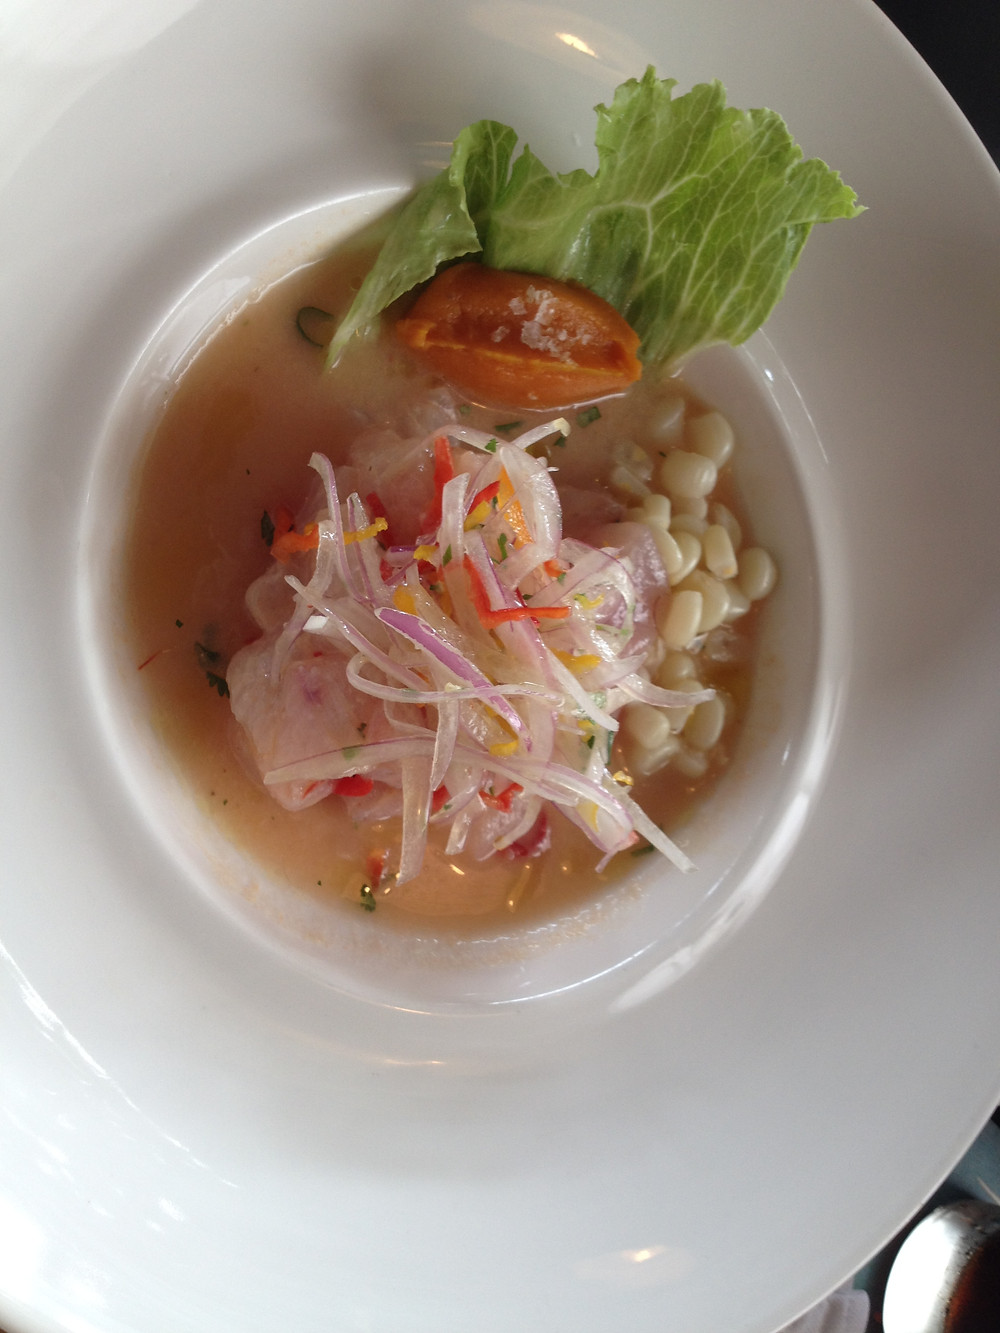 """Ceviche de lenguado (sole) at El Mercado – simply cooked in lime juice and red chili """"tiger milk"""" with red onion, cilantro served with iceberg lettuce, sweet potato and corn"""